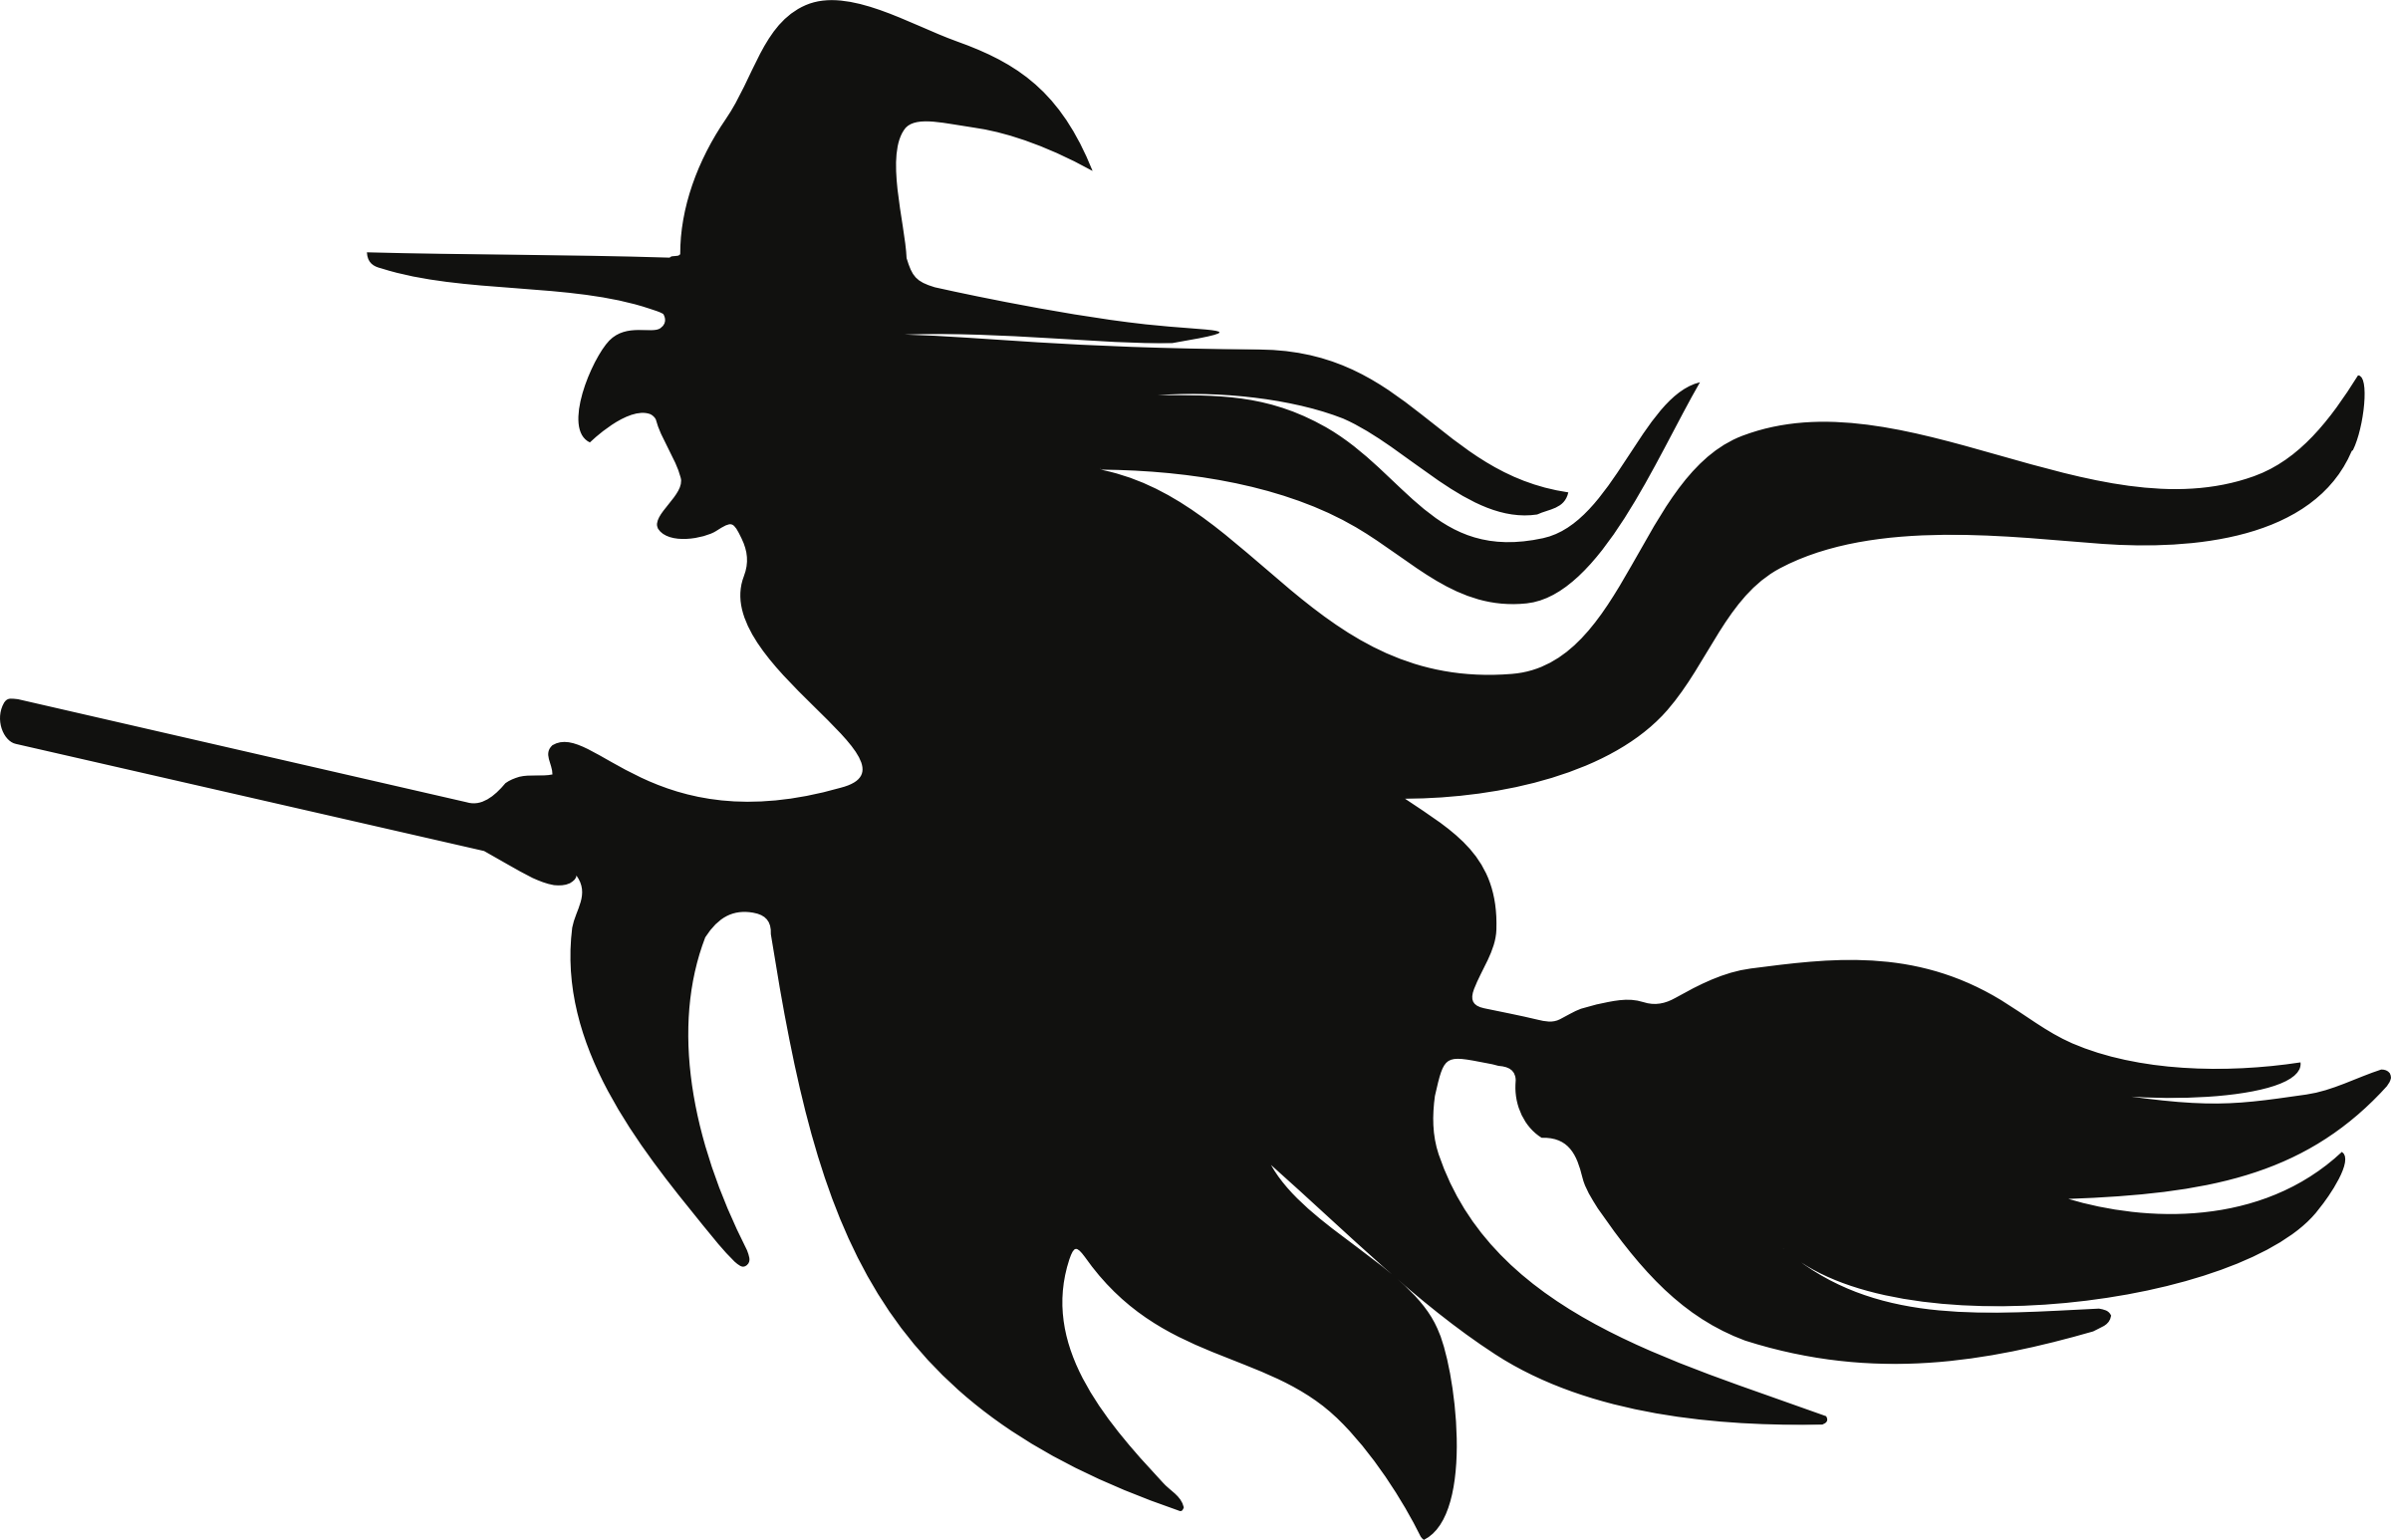 Witch on broom png. Clipart broomstick silhouette big